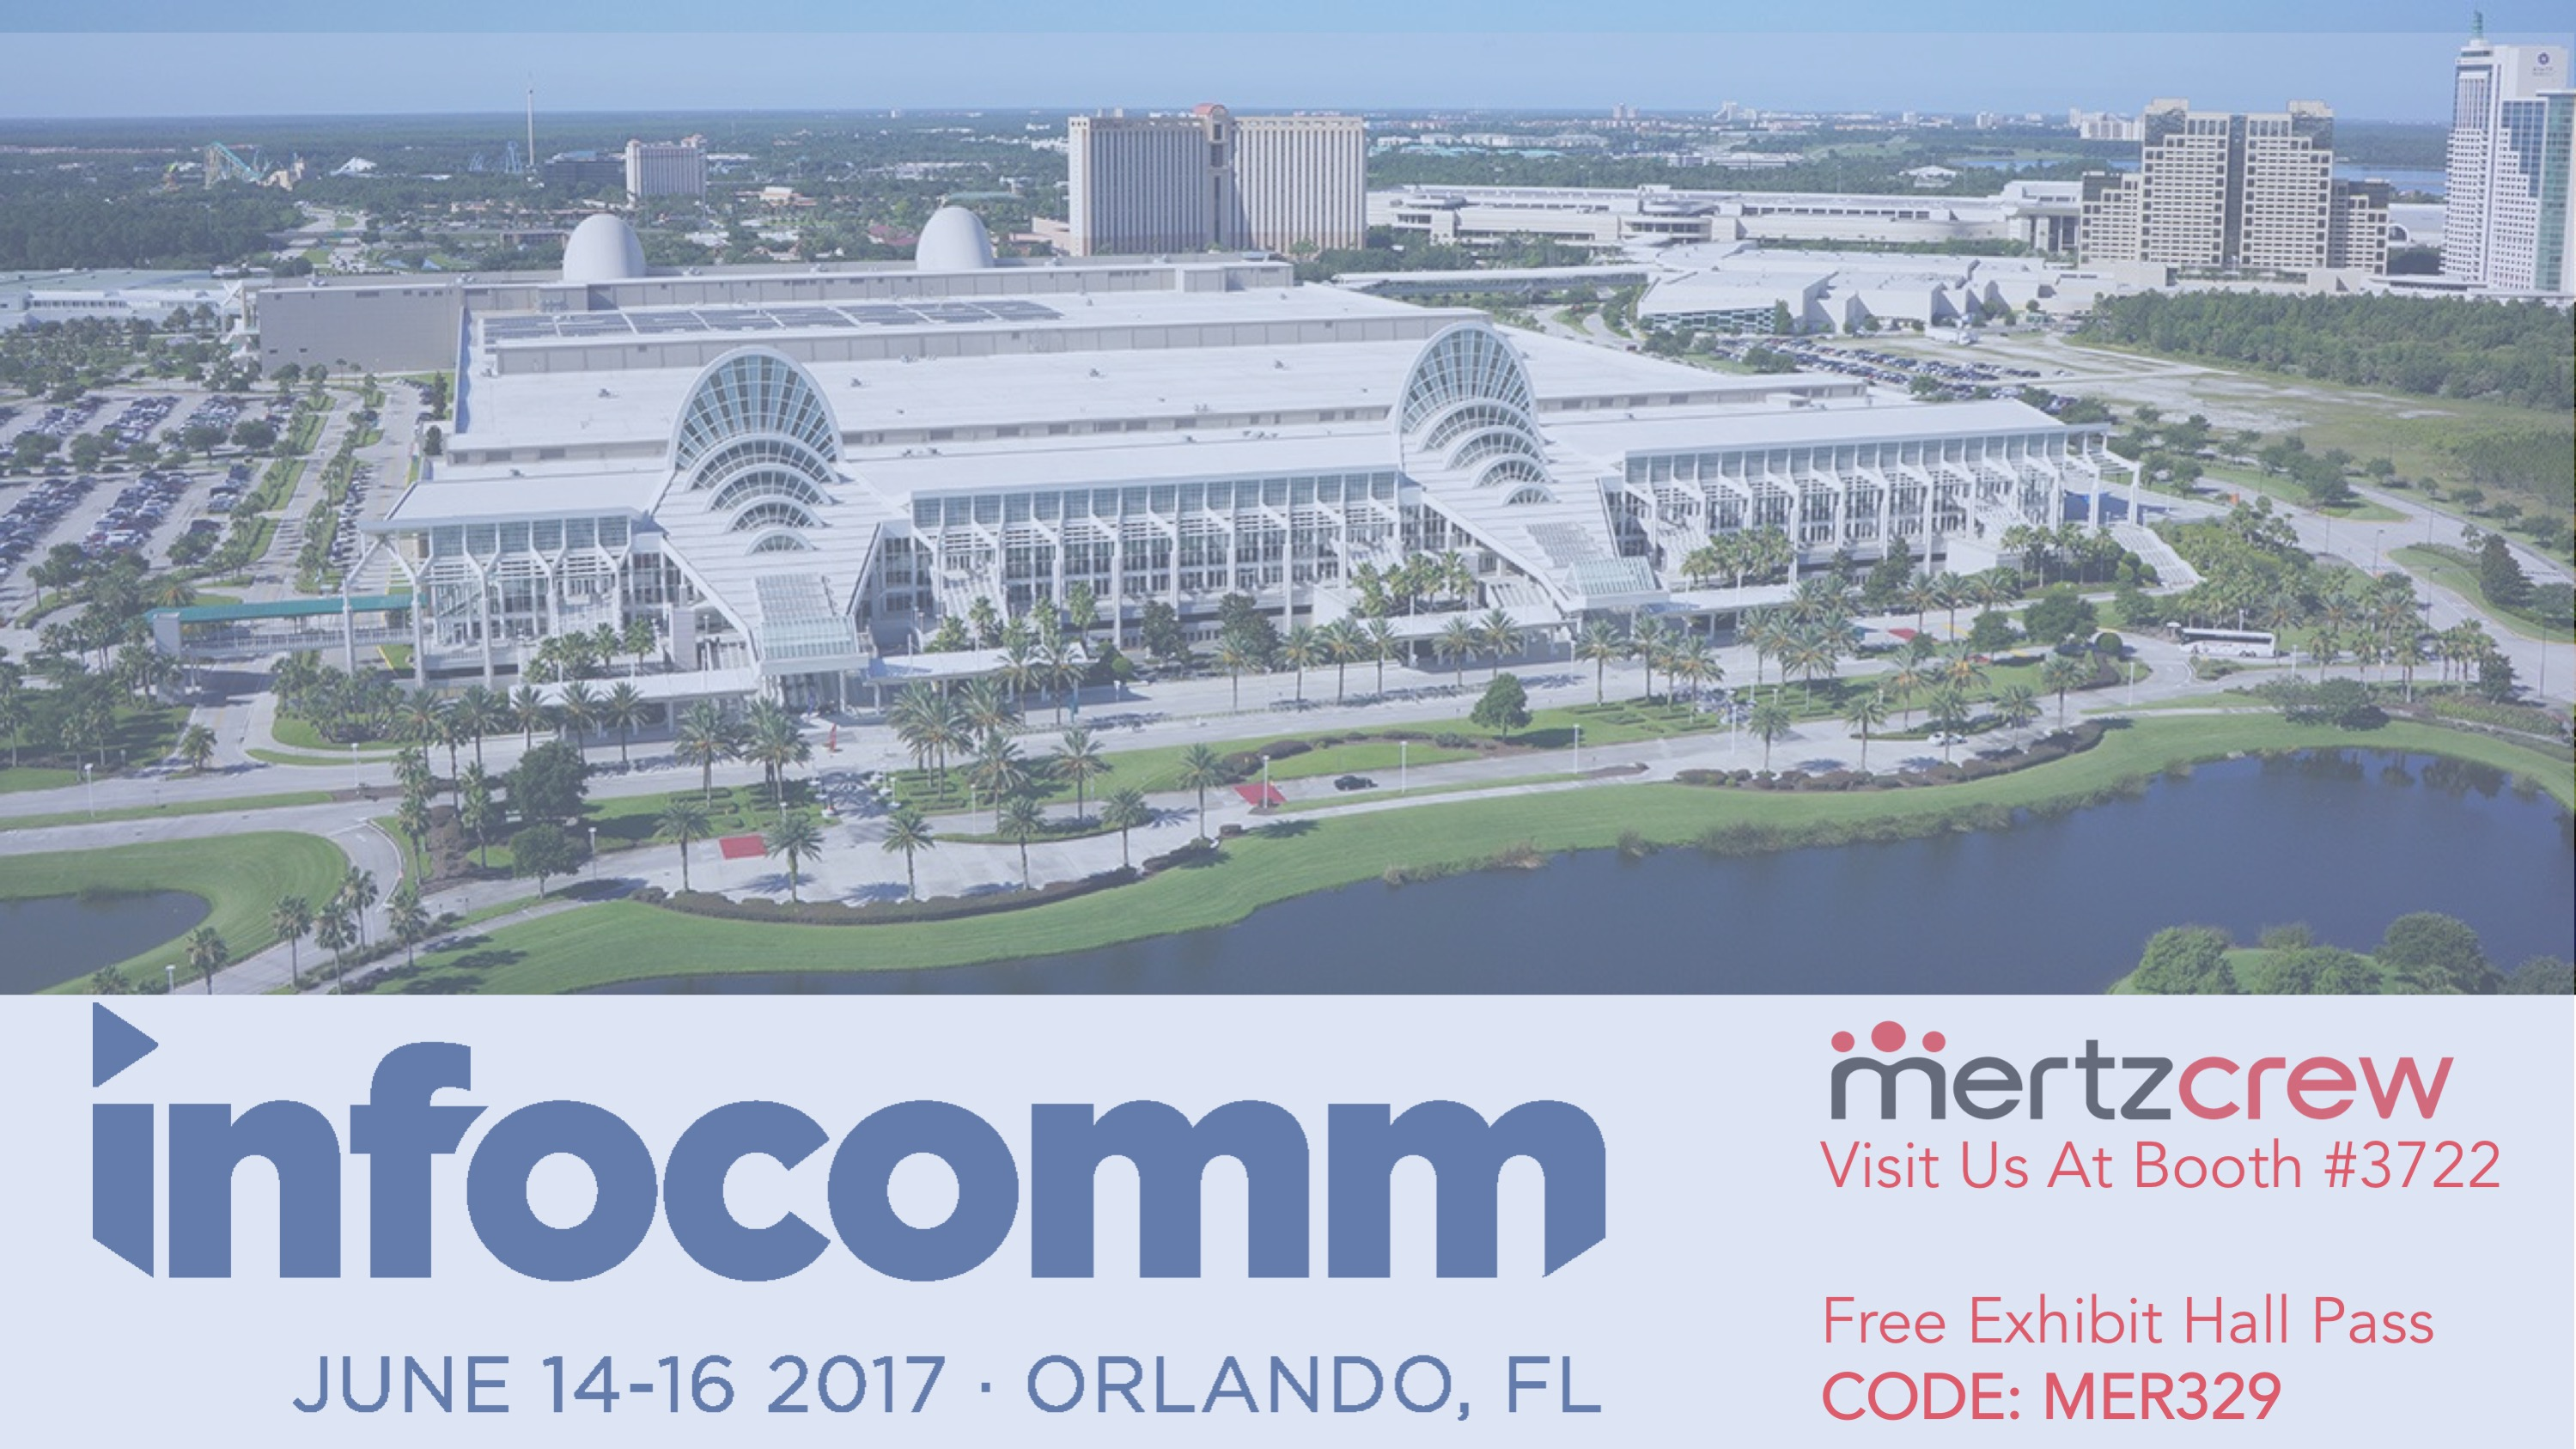 Infocomm-2017-Blog-Cover-2.jpg